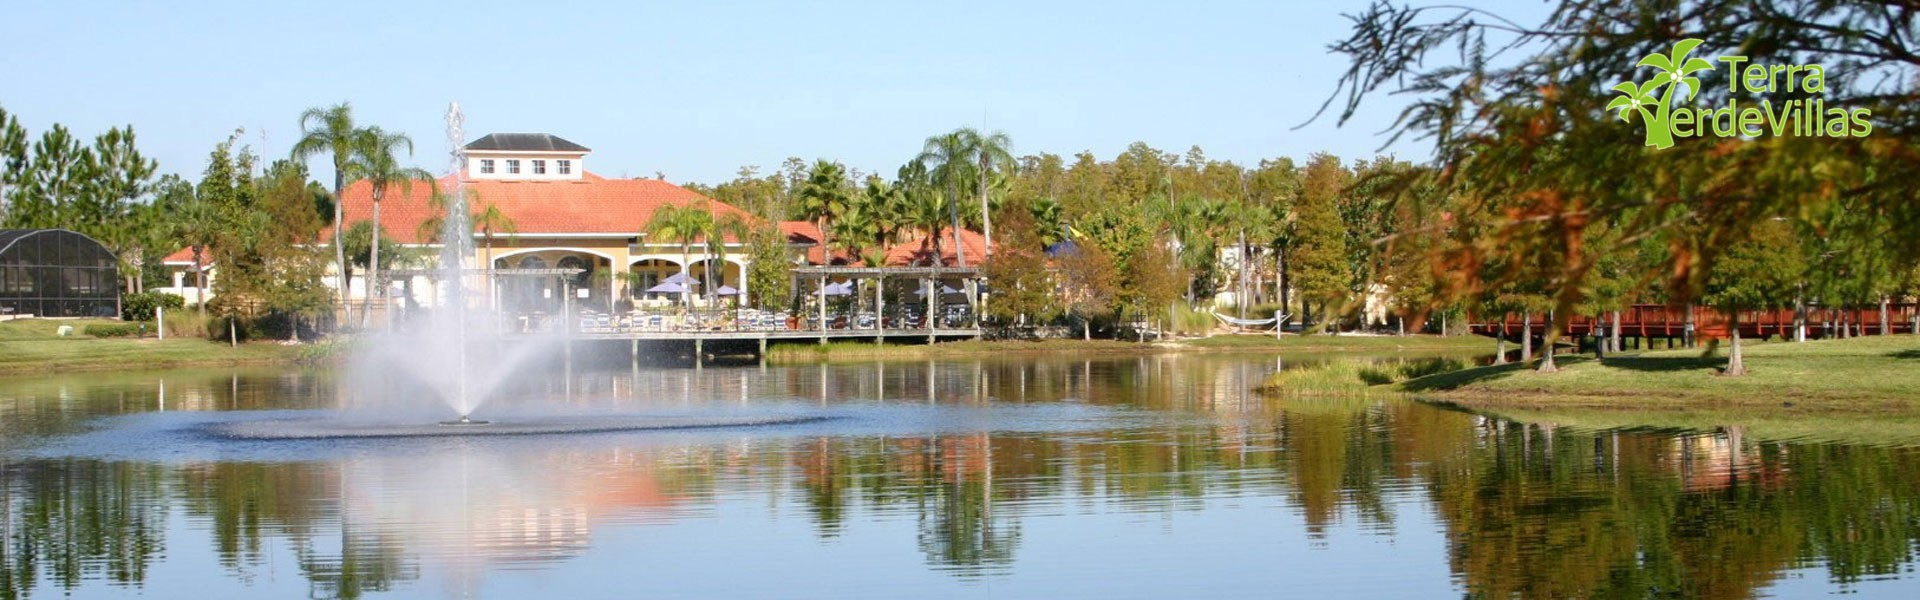 Terra Verde Resort Florida